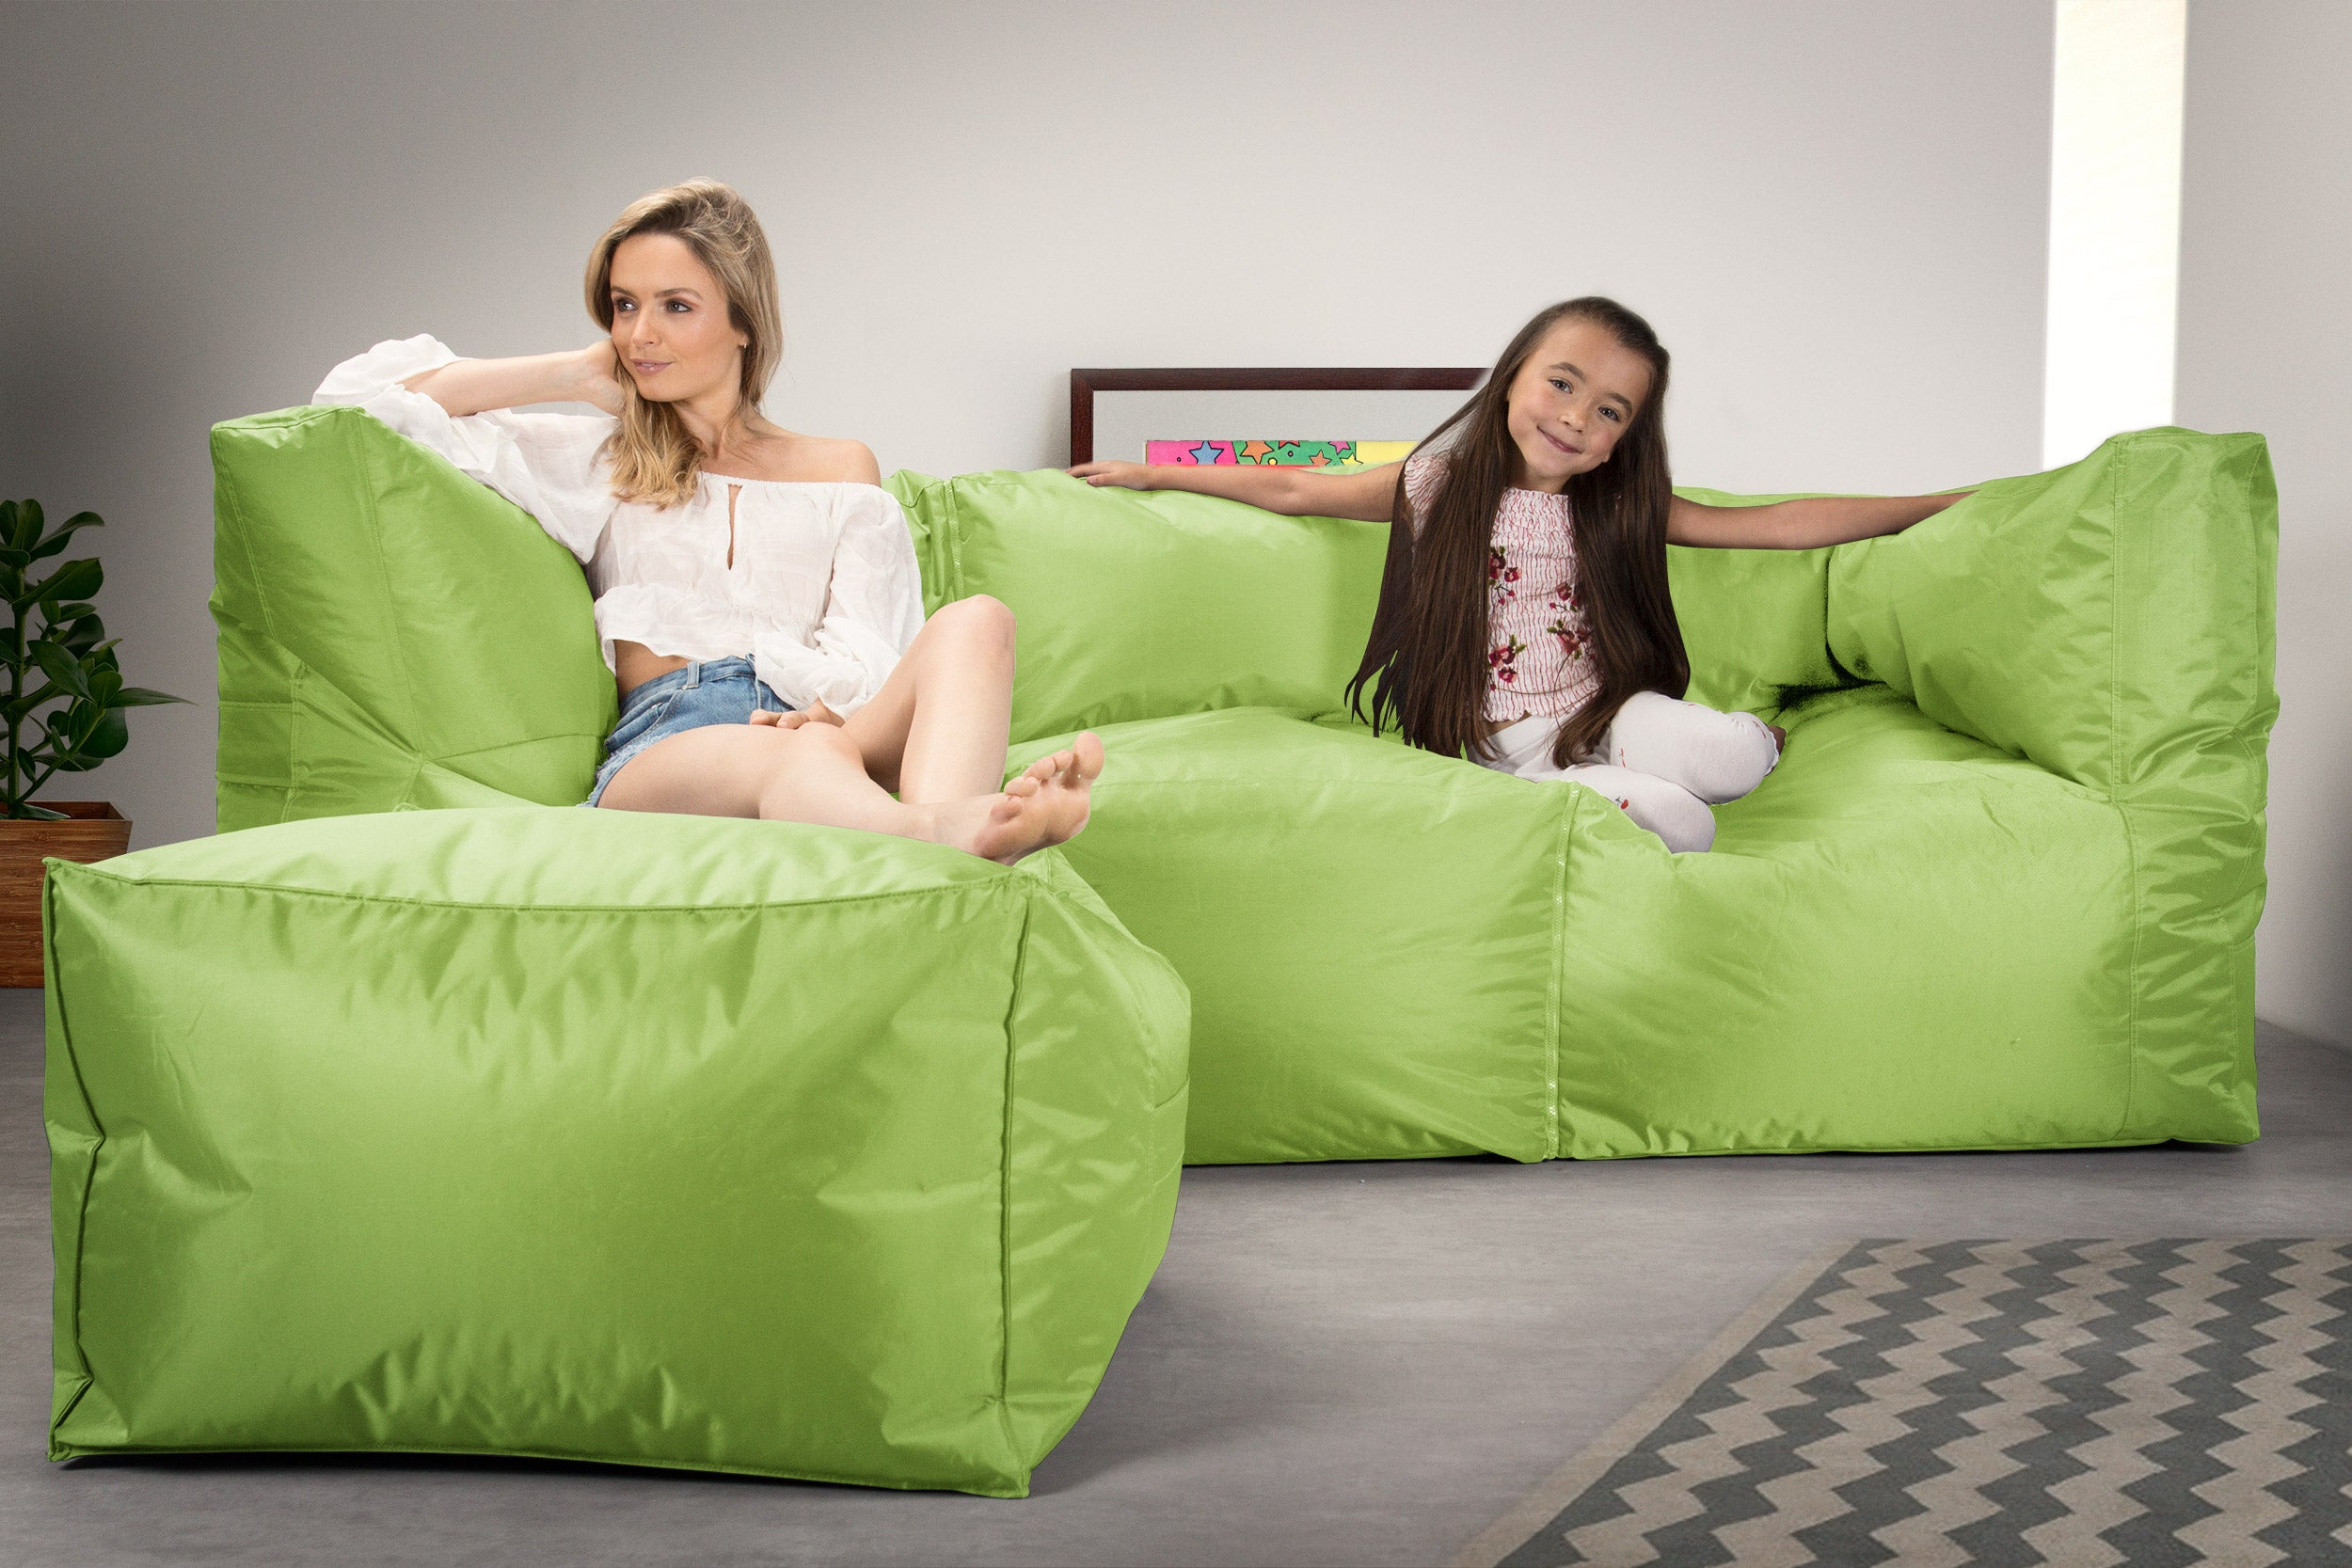 SmartCanvas™ 2 Piece Modular Sofa Bean Bag - Lime